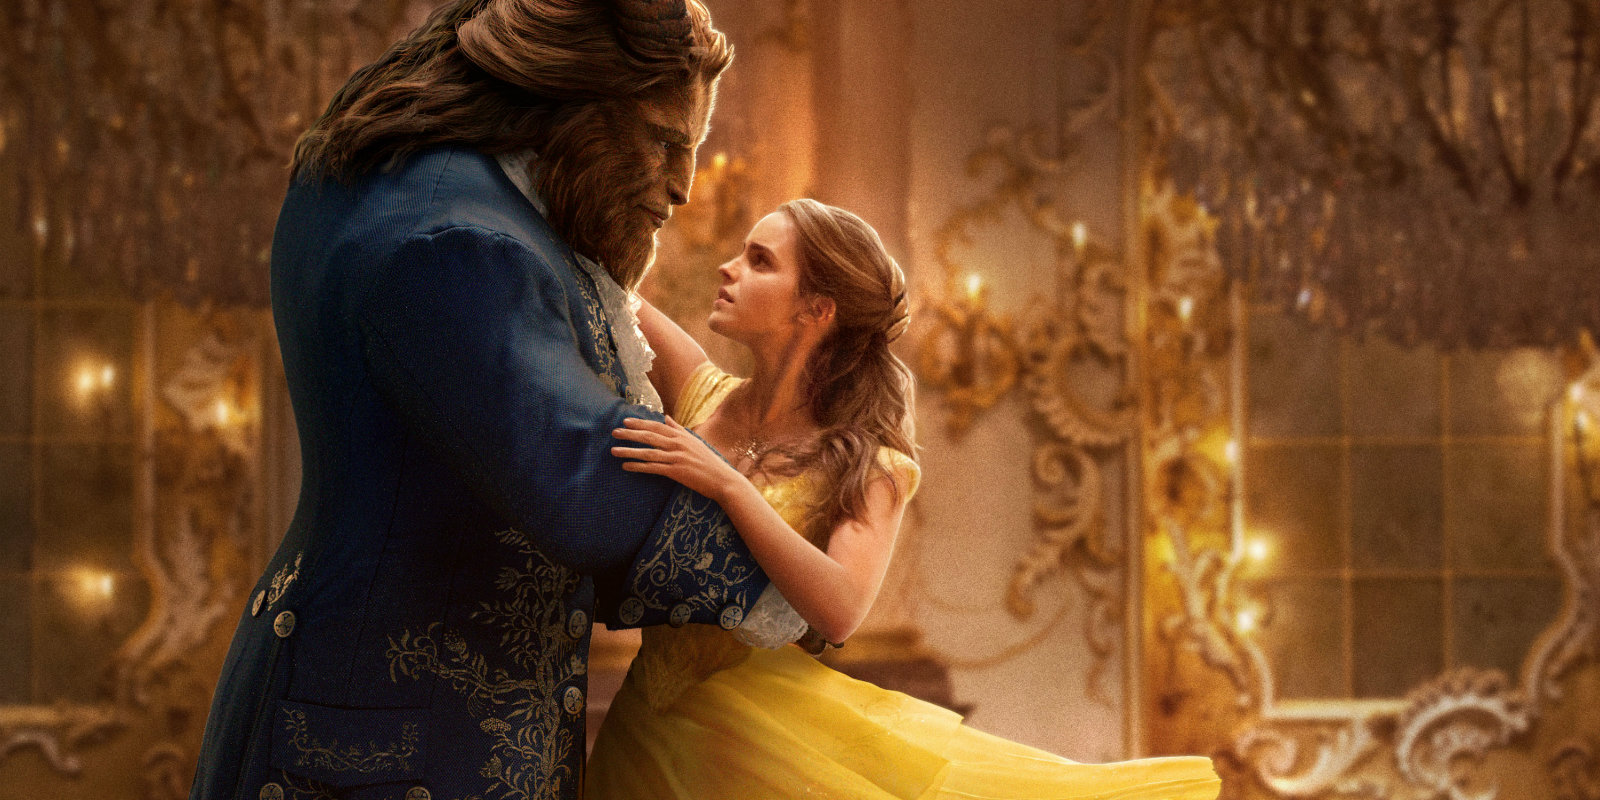 More 'Beauty and the Beast' Movies Are Possible, Plus: The 'Frozen' Easter Egg That Never Happened